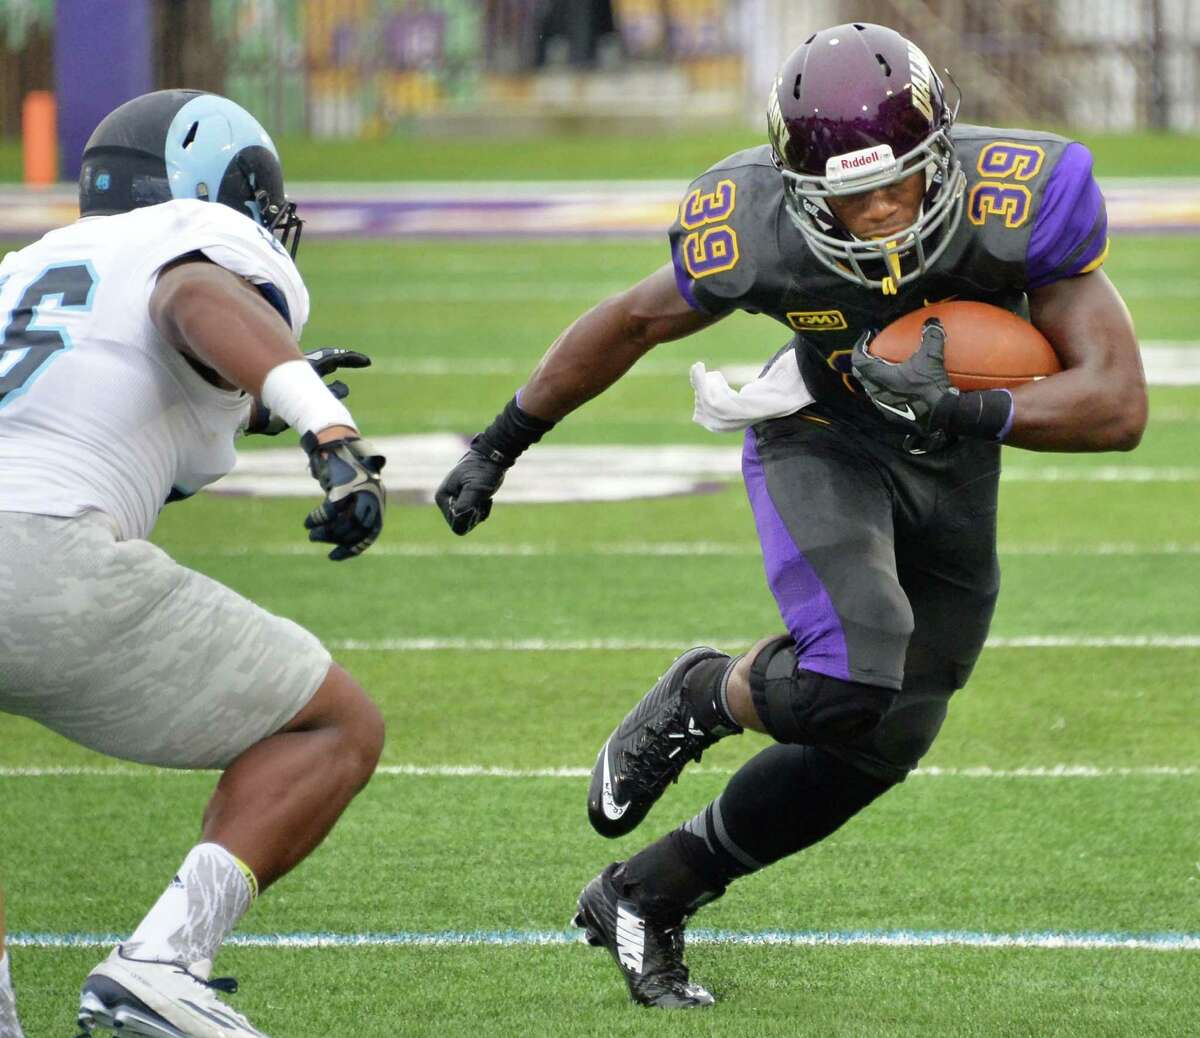 UAlbany's #39 Elliot Croskey, right, runs around Rhode Island's Adam Parker during Saturday's game at Bob Ford Field Sept. 12, 2015 in Albany,NY. (John Carl D'Annibale / Times Union)